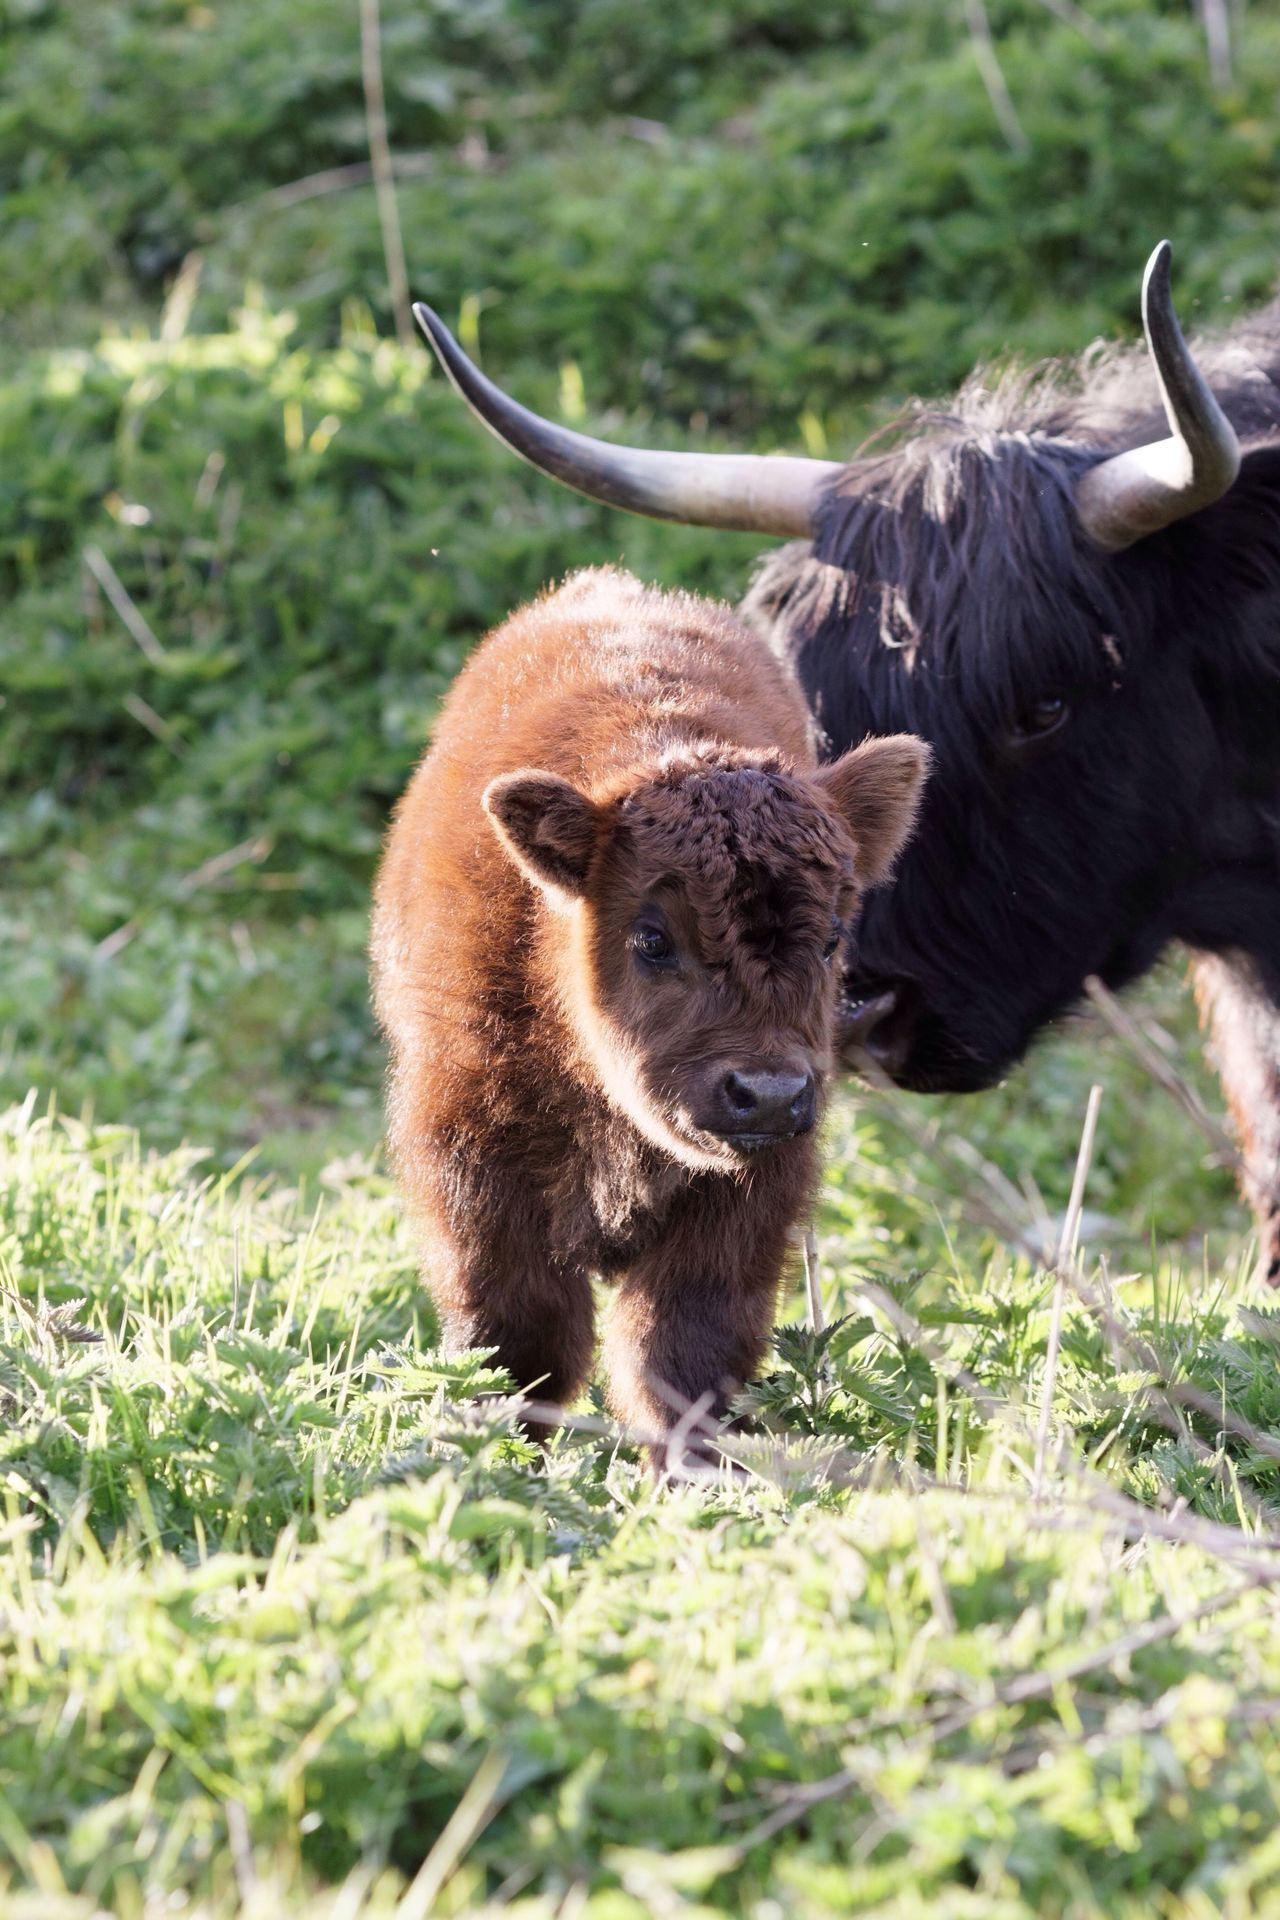 Highland Cattle Newly Born Grass Mammal Animal Themes Animal Wildlife Outdoors Livestock Day Animals In The Wild Nature No People Domestic Animals Close-up